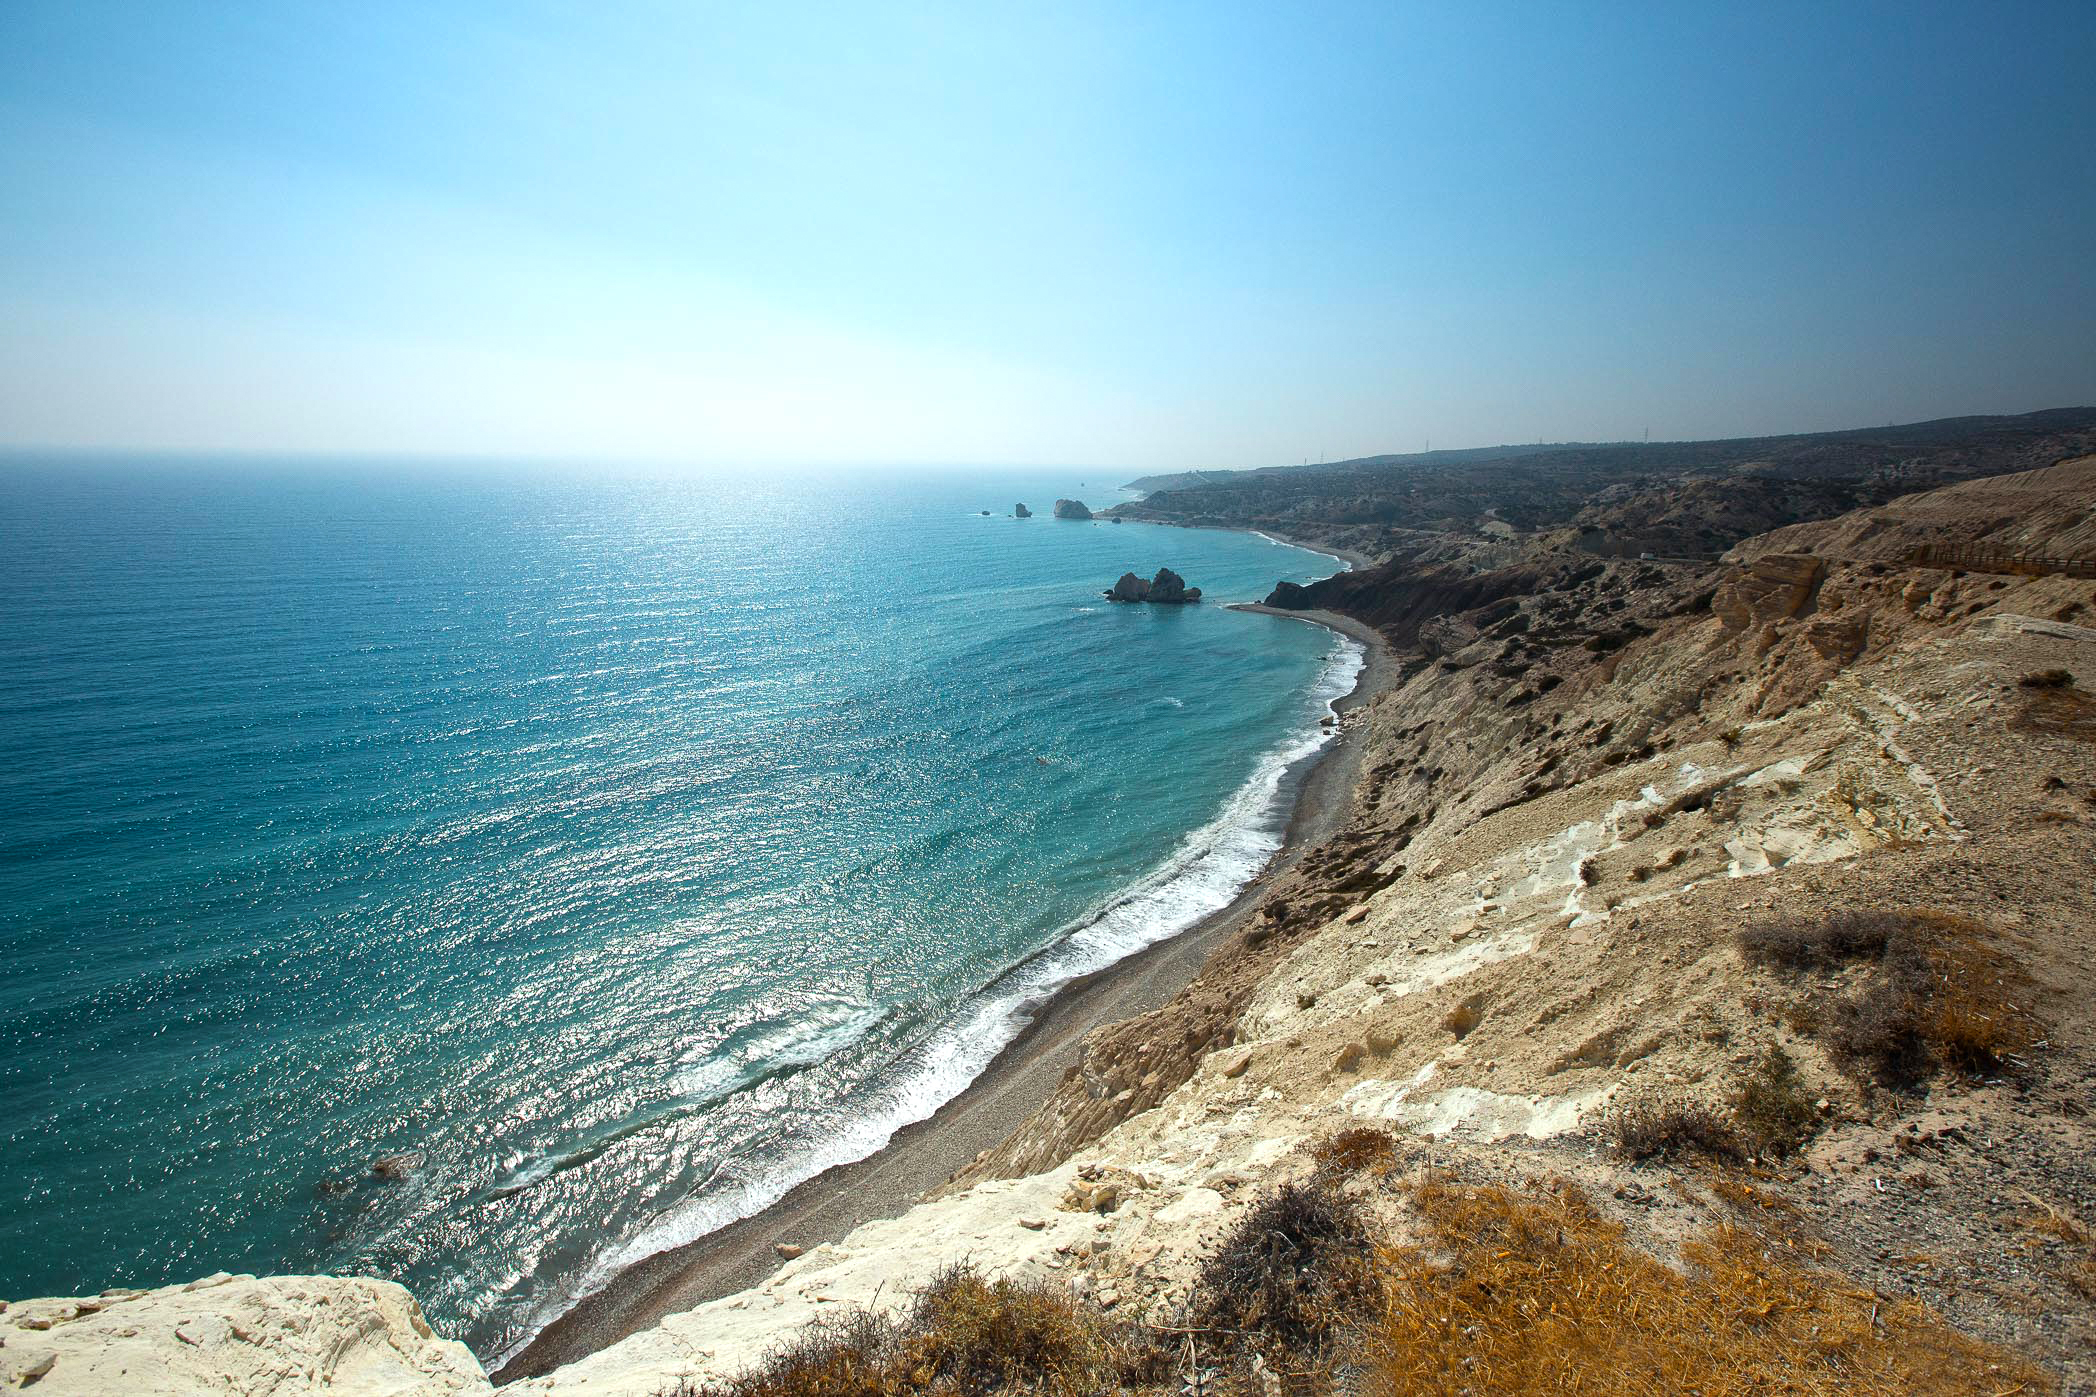 A view of Aphrodite's rock taken on our road trip back to Larnaca